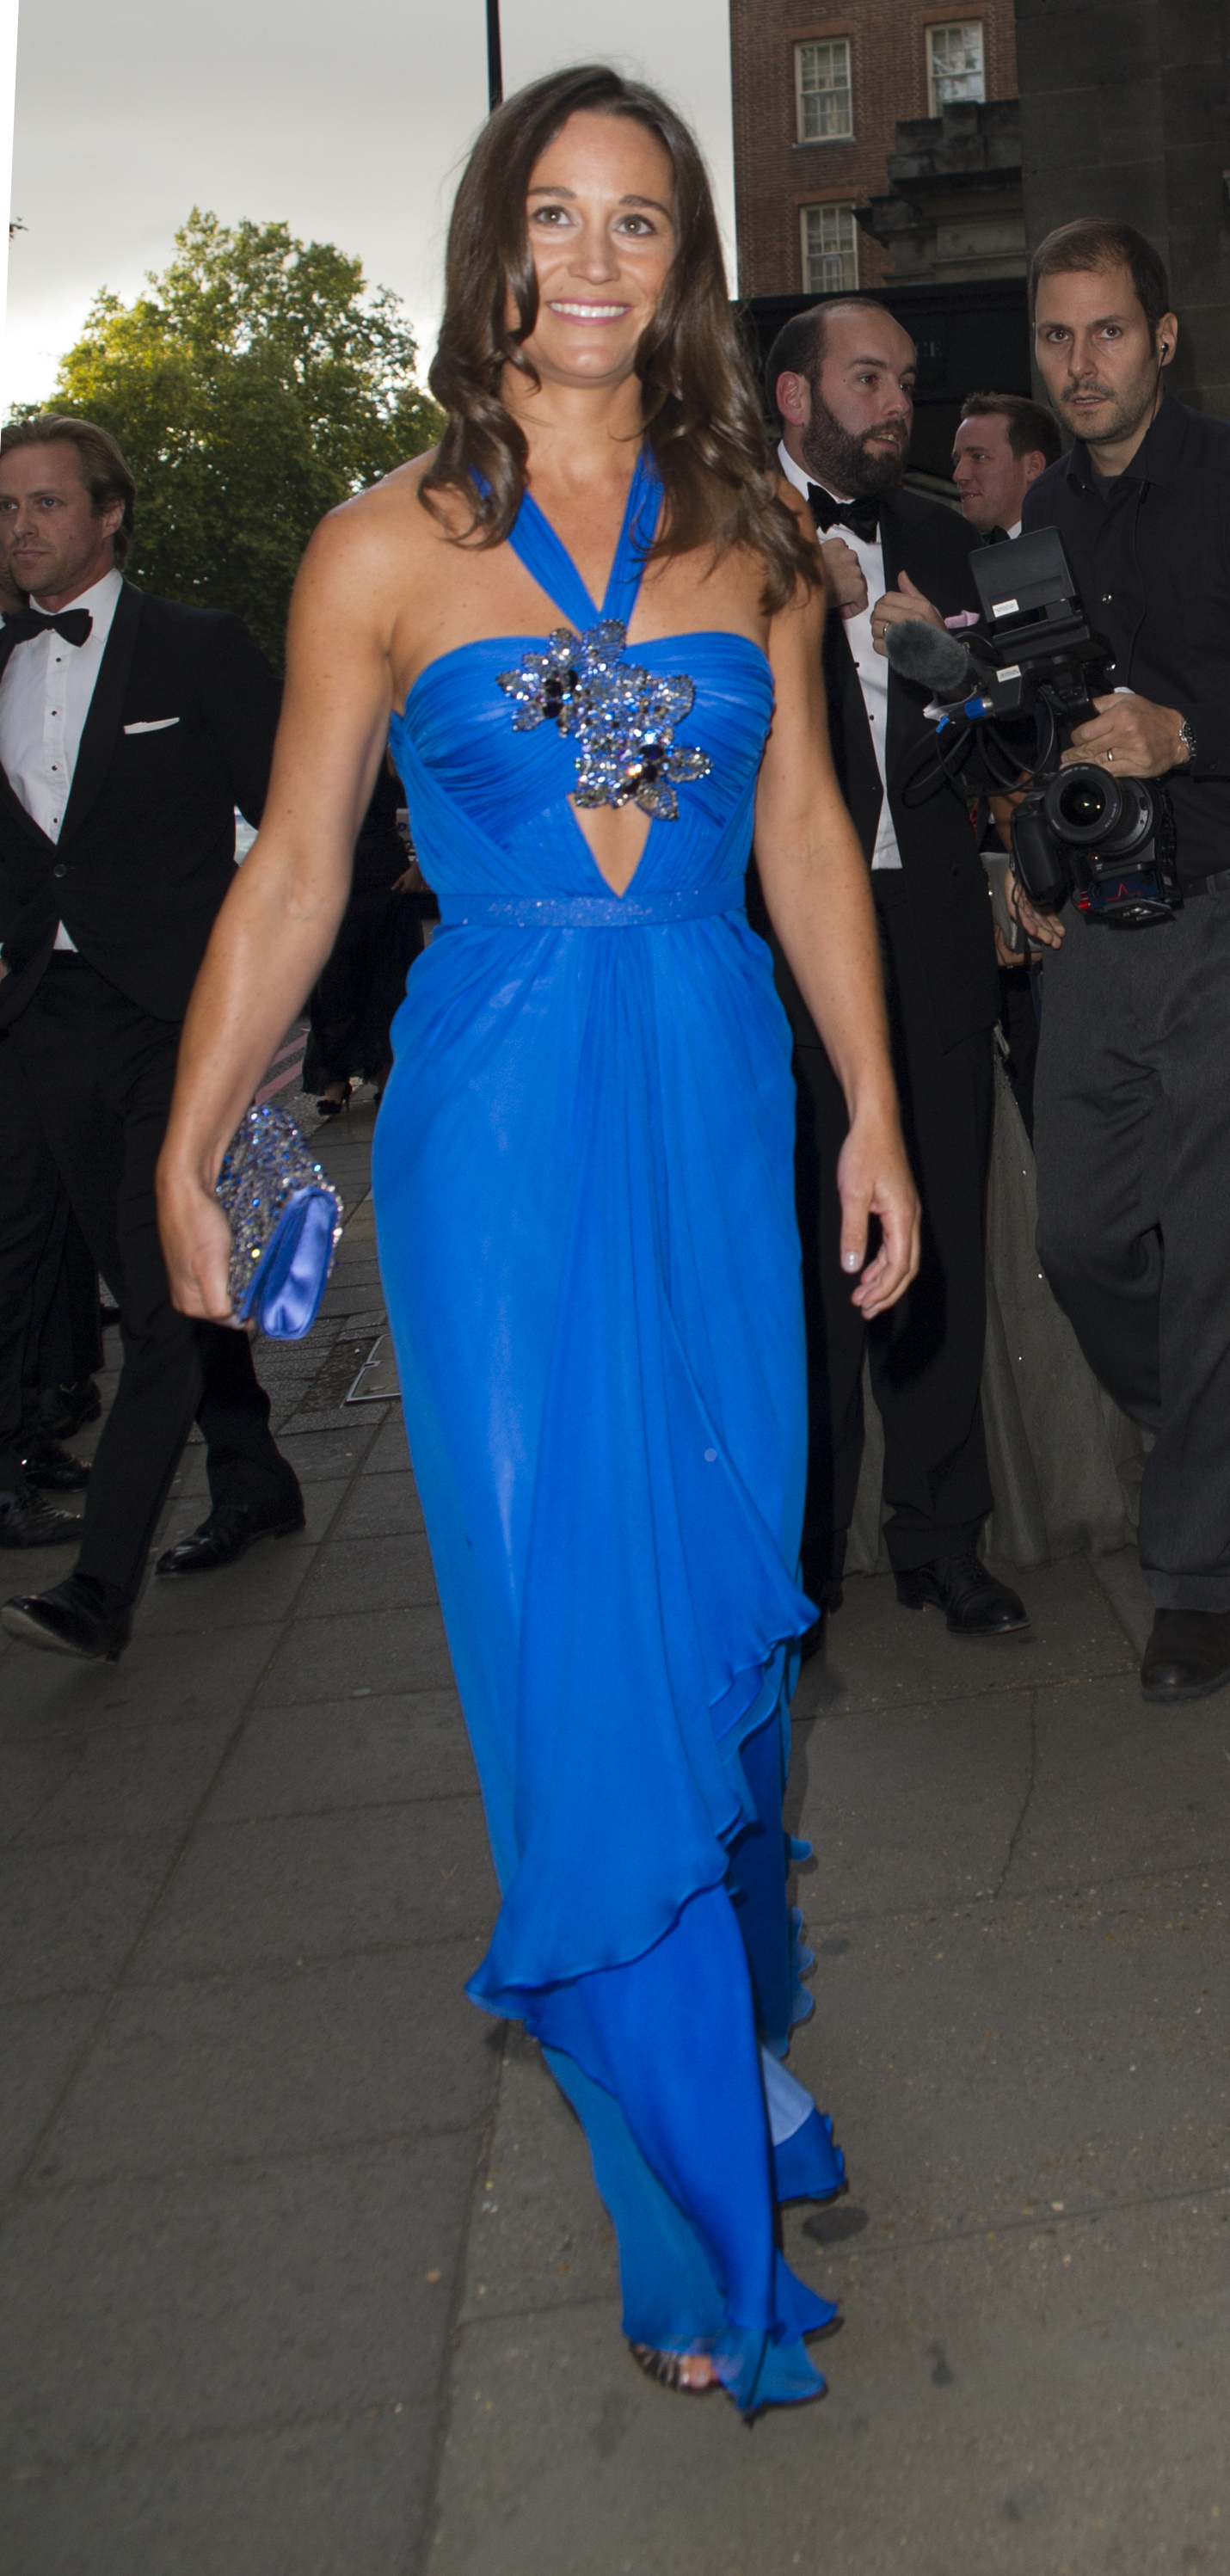 Pippa Middleton arrives at the Boodles Boxing Ball in an electric blue dress (WENN.com)